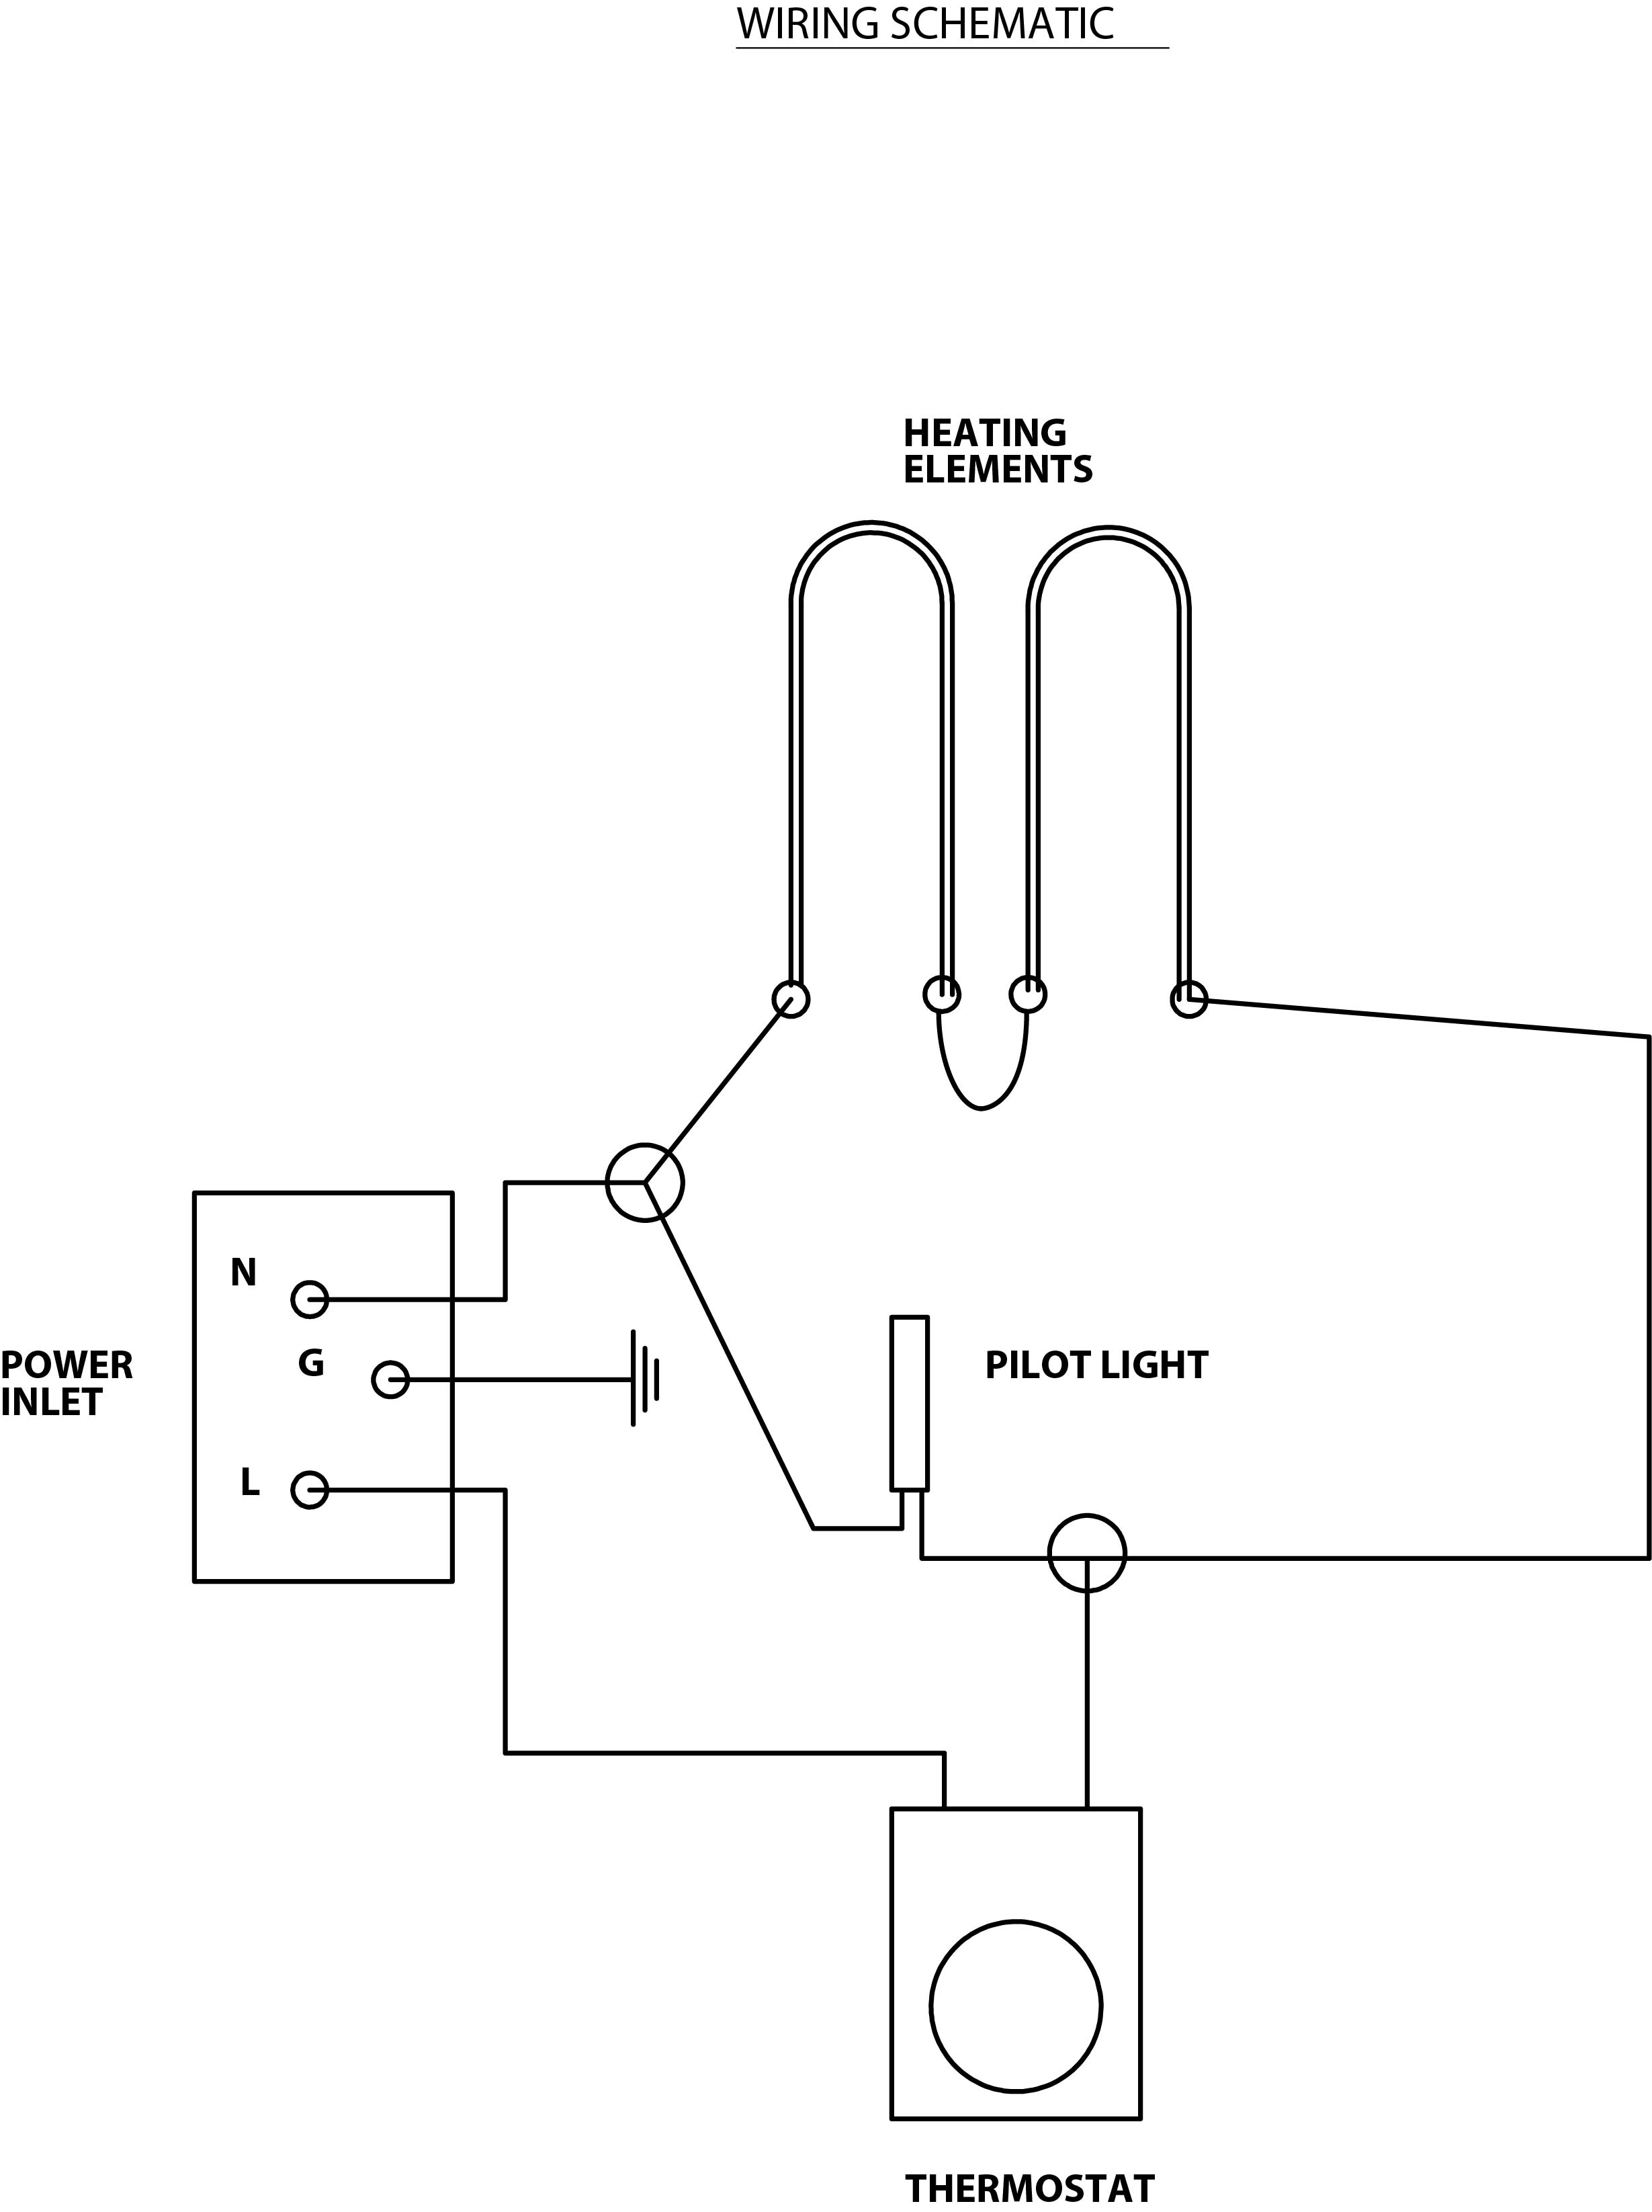 Wiring Diagram 230 Volt Plug Choice Image Diagram Sample